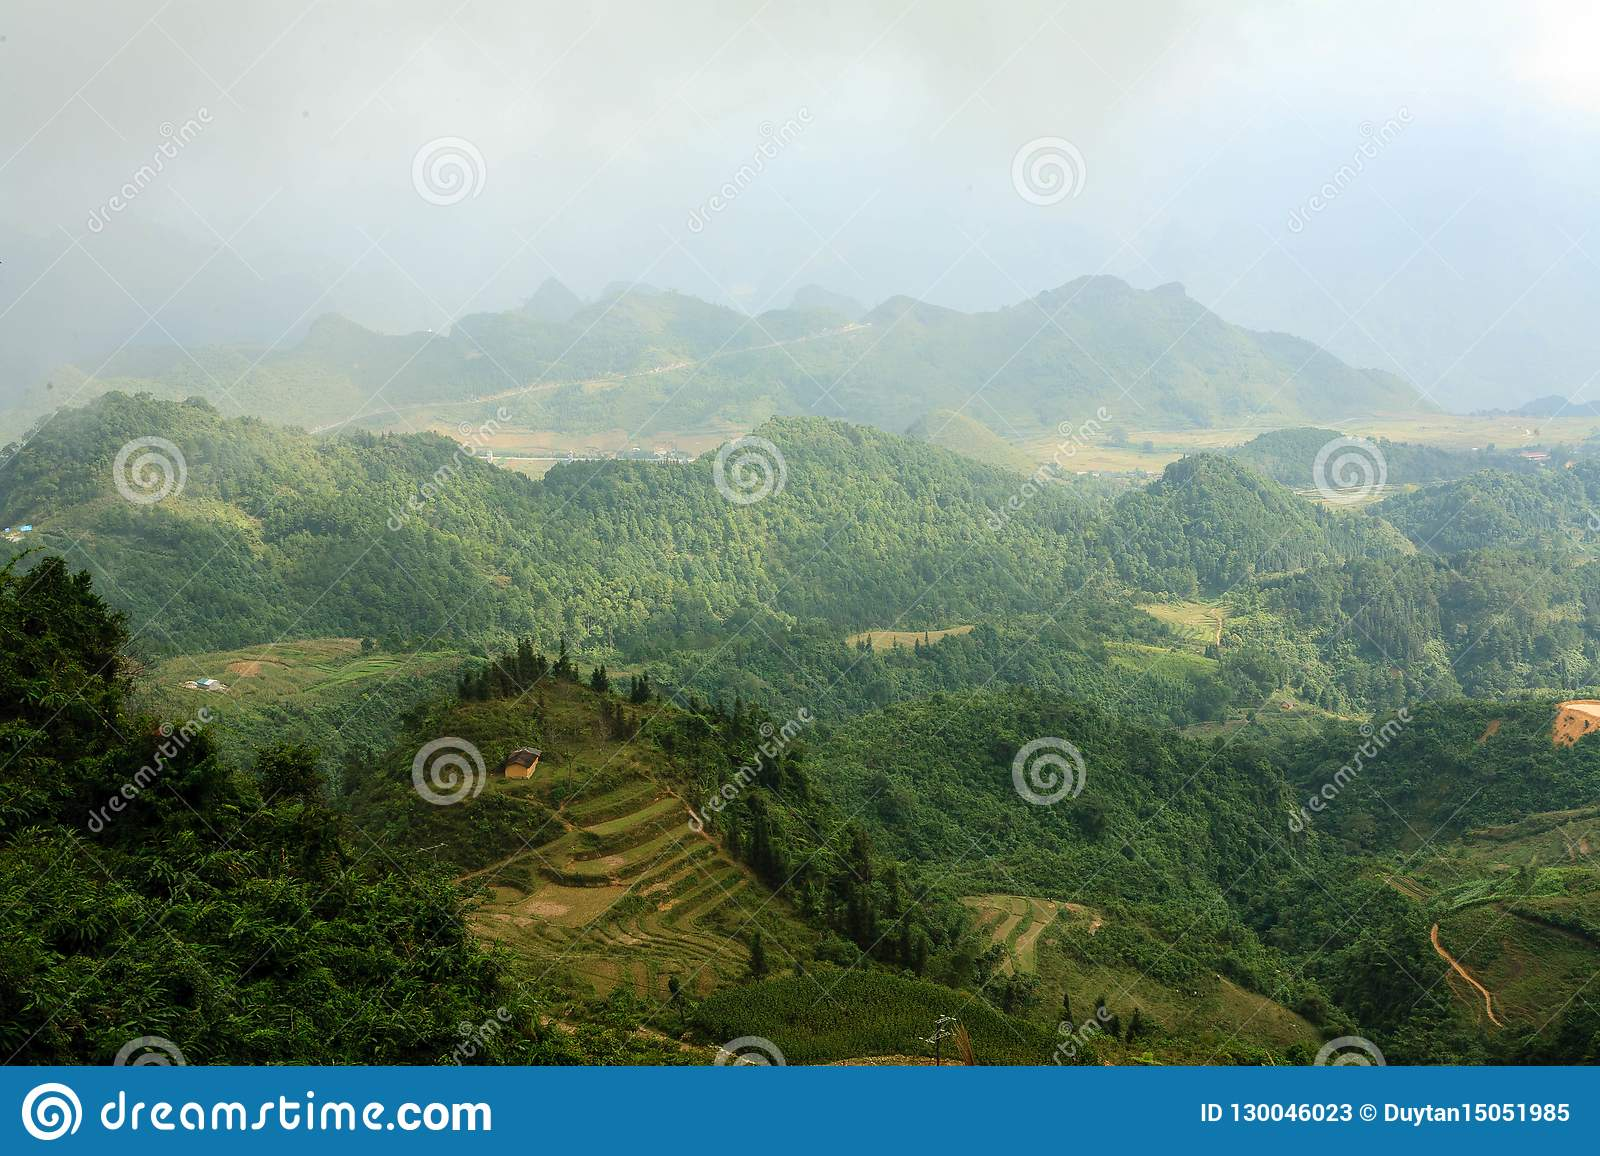 Moutains in Hà Giang